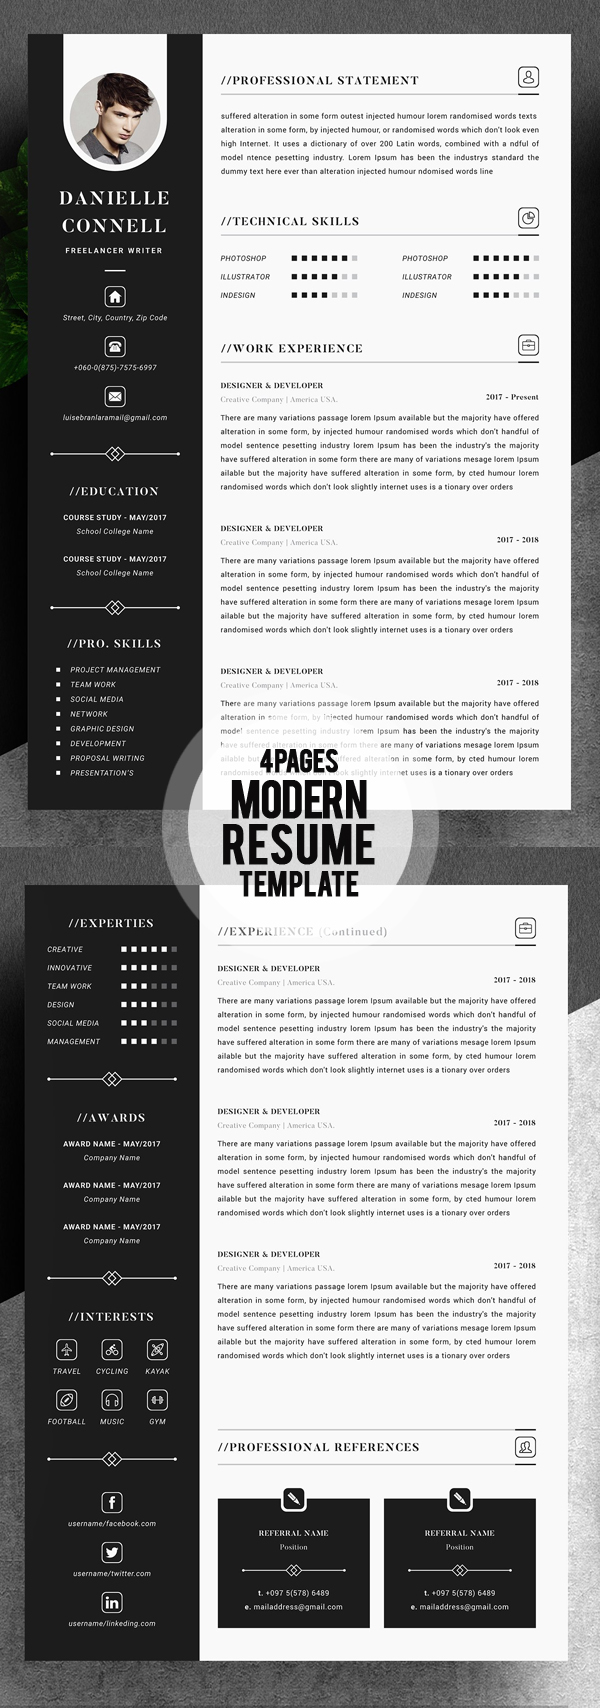 Modern Resume Template 2018 (4 Pages)